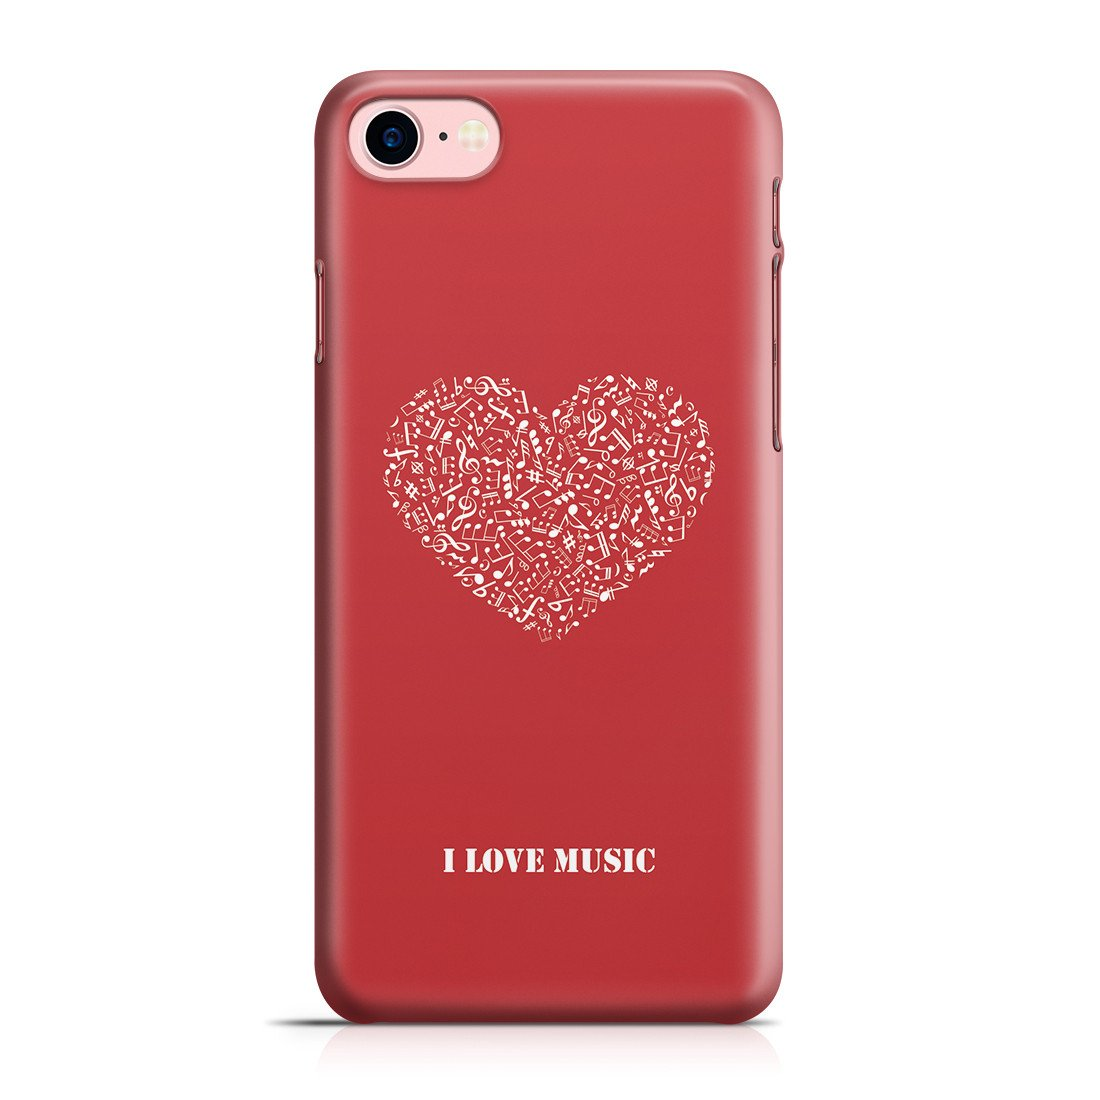 new concept d61f1 51579 iPhone 8 Case - Music Is Love